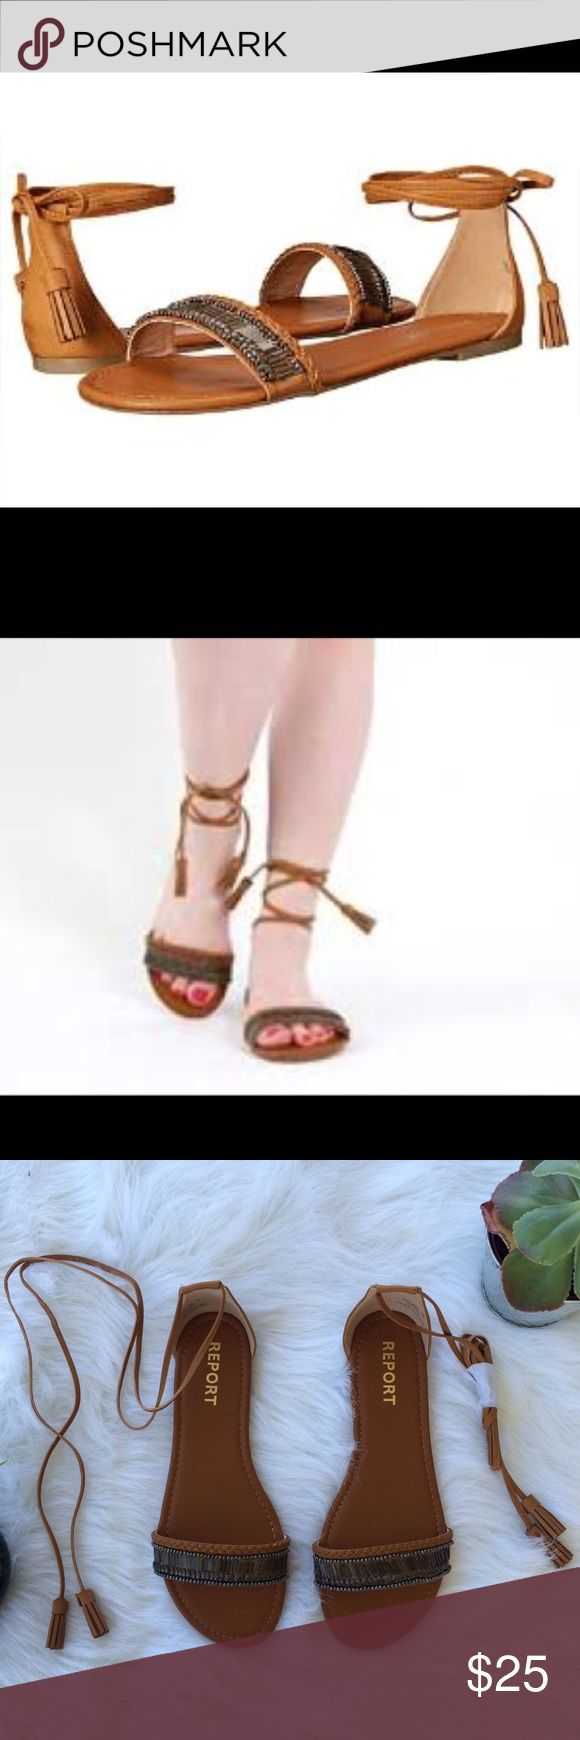 Report Greek Ankle Wrap Sandals Beautiful ankle wrap Grecian sandals! New in box. Size 9. Report Shoes Sandals